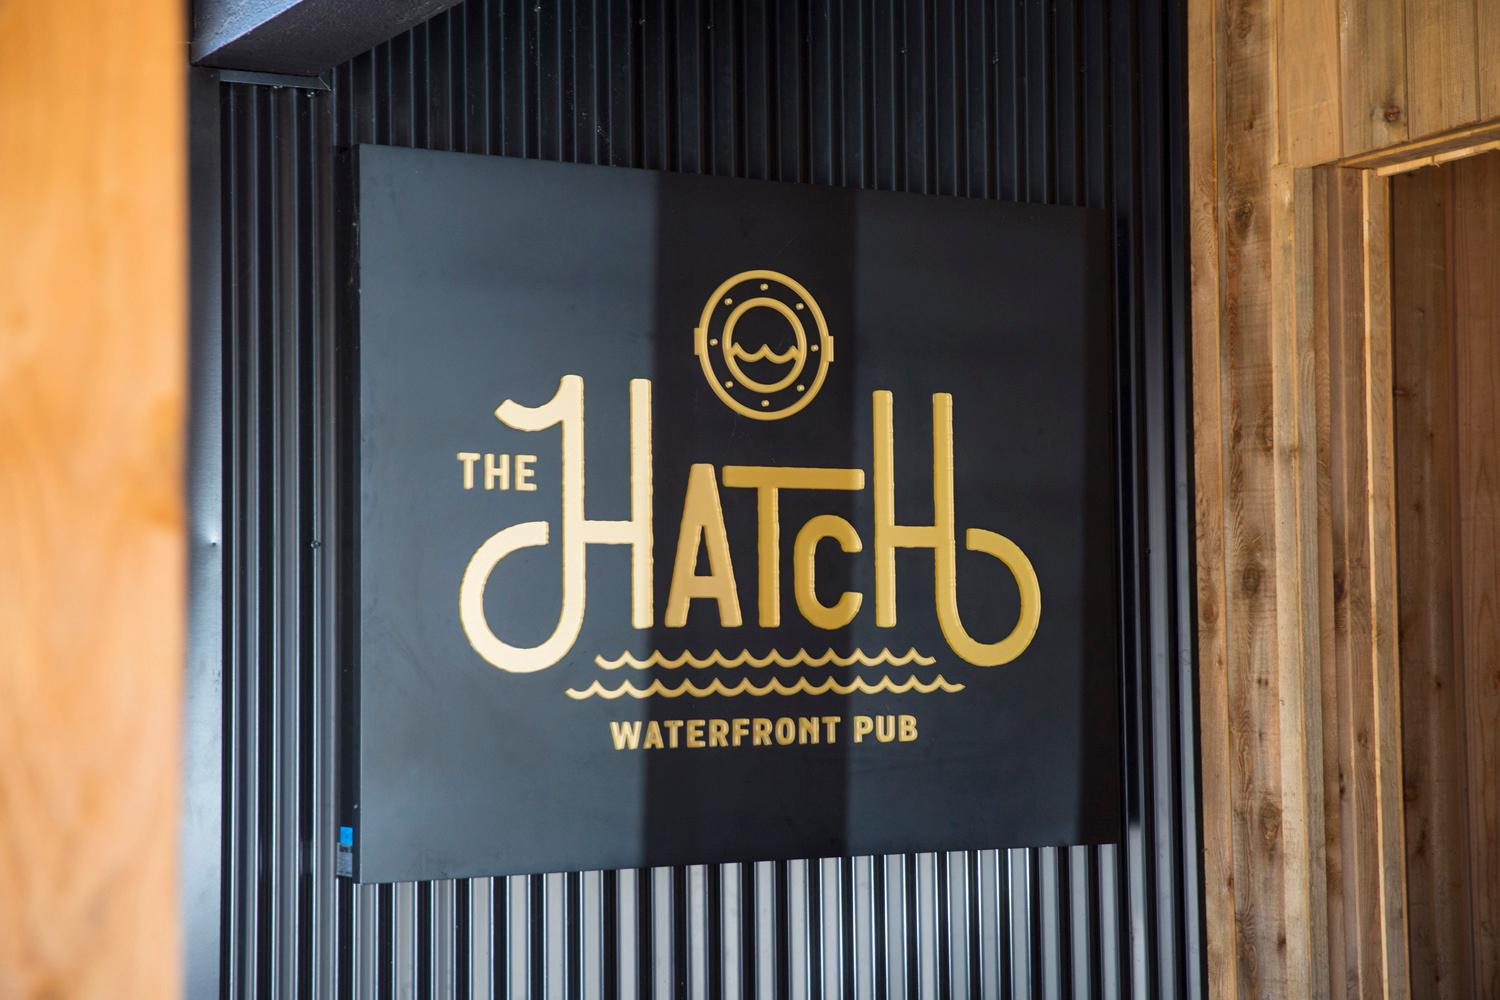 The Hatch Waterfront Pub at the Tofino Resort + Marina offers great quality eats designed by chef Paul Moran in a more casual setting than its sister restaurant, 1909 Kitchen. Its outside patio is fantastic in the summertime for watching the wildlife and seaplanes landing in the sound. They serve up classics like fish & chips (you can ask for poutine) and more creative takes such as their pulled-pork Banh Mi sandwich. If you are in between adventures or just want to relax, this is the spot for you. (Sy Bean / Seattle Refined)